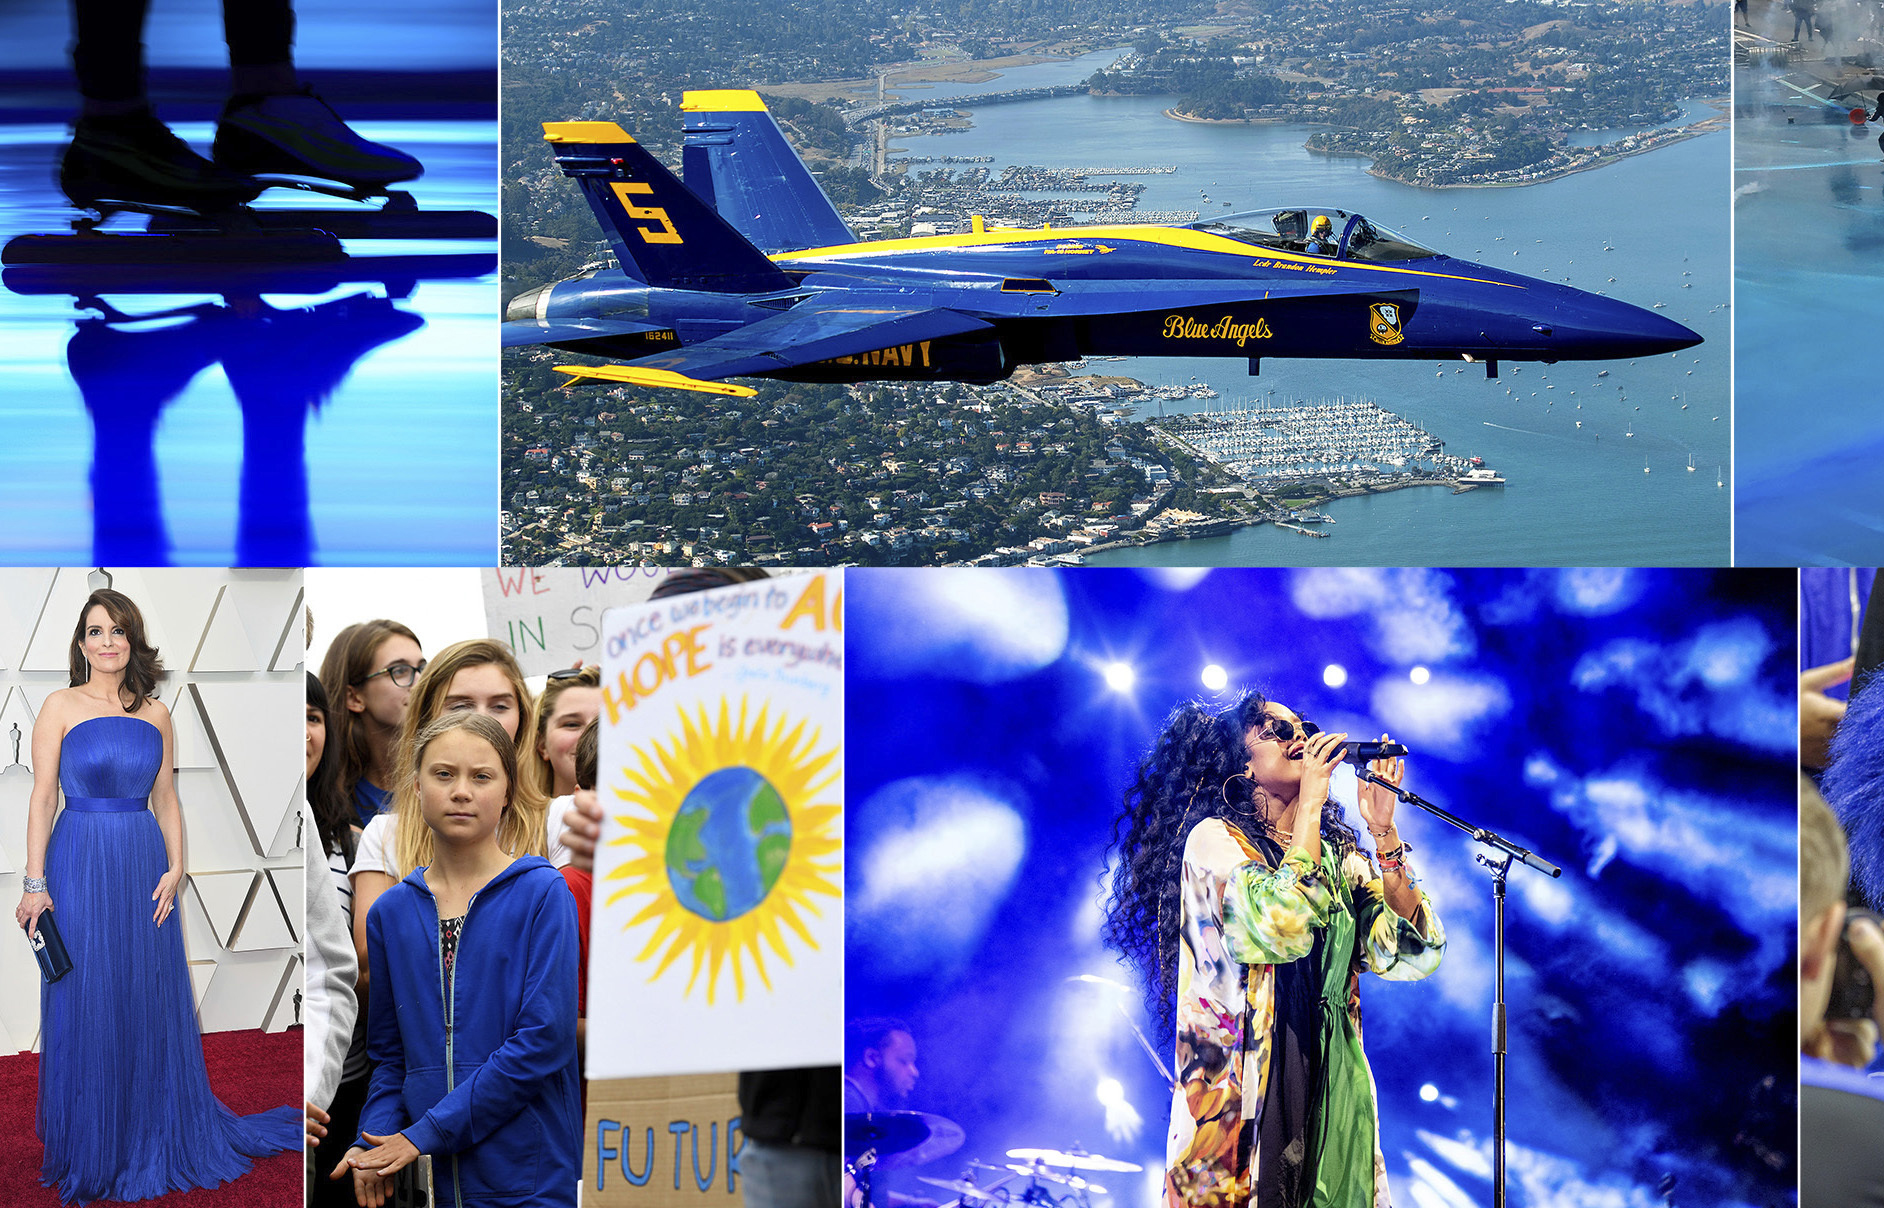 The Pantone Color Institute has named Classic Blue as its color of the year for 2020. The color was visible everywhere in 2019 — from Tina Fey's blue gown at the Oscars and Swedish youth climate activist Greta Thunberg wearing a blue sweatshirt during her U.S. visit to H.E.R. performing under blue lights at Coachella and the color of the U.S. Navy's Blue Angels jets.